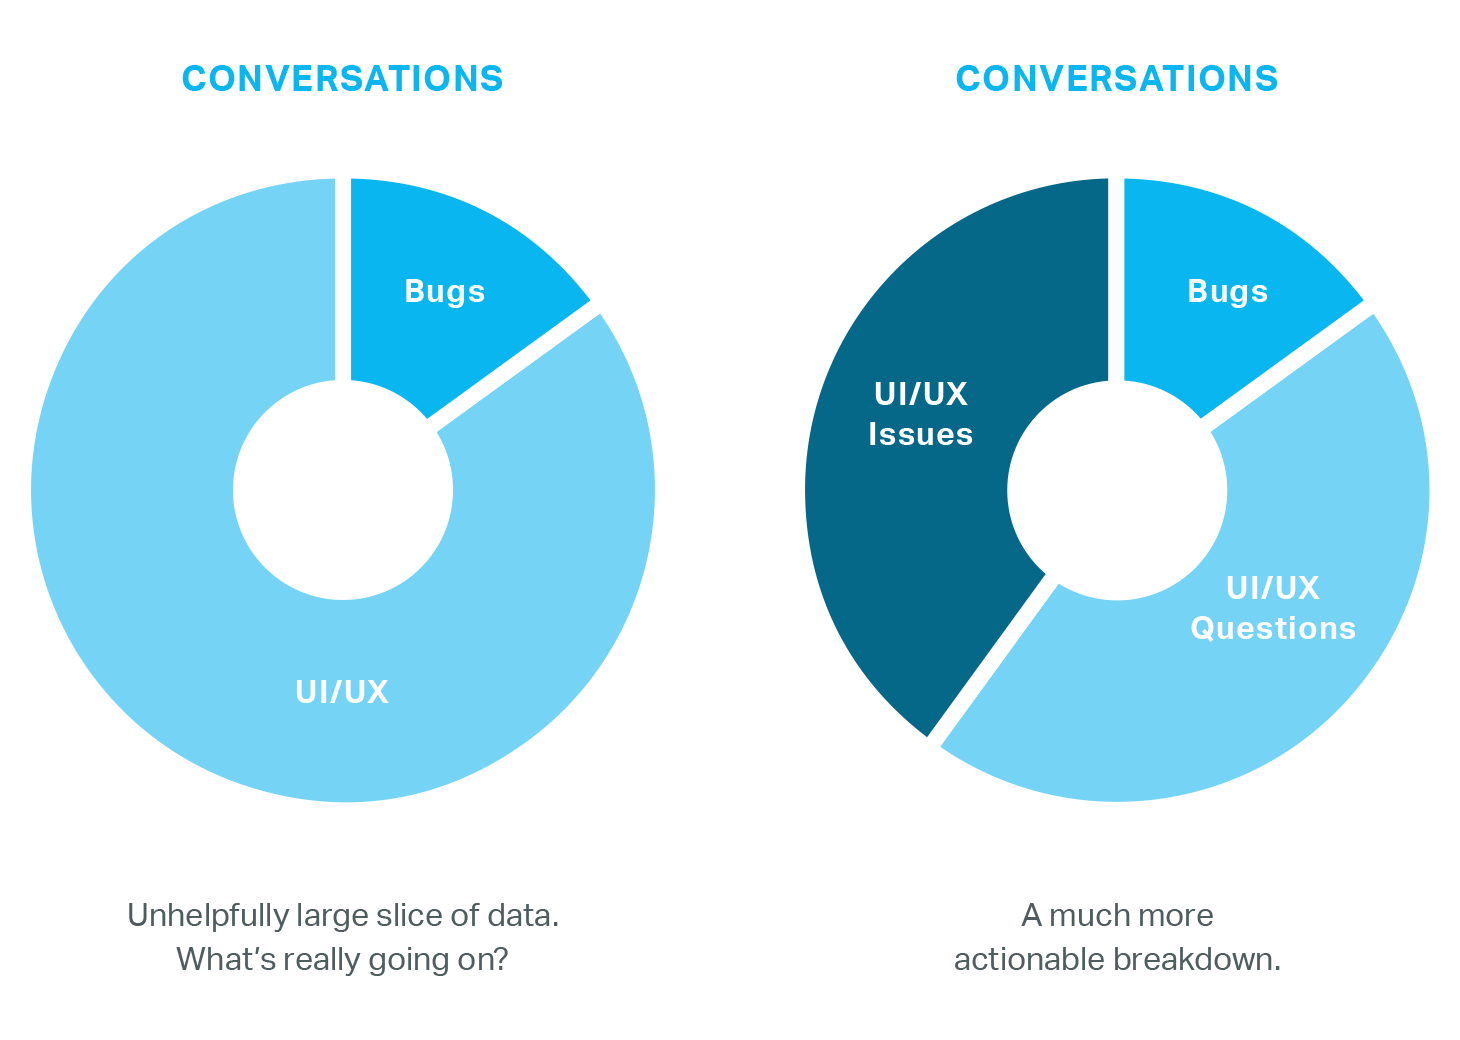 Conversation data comparision